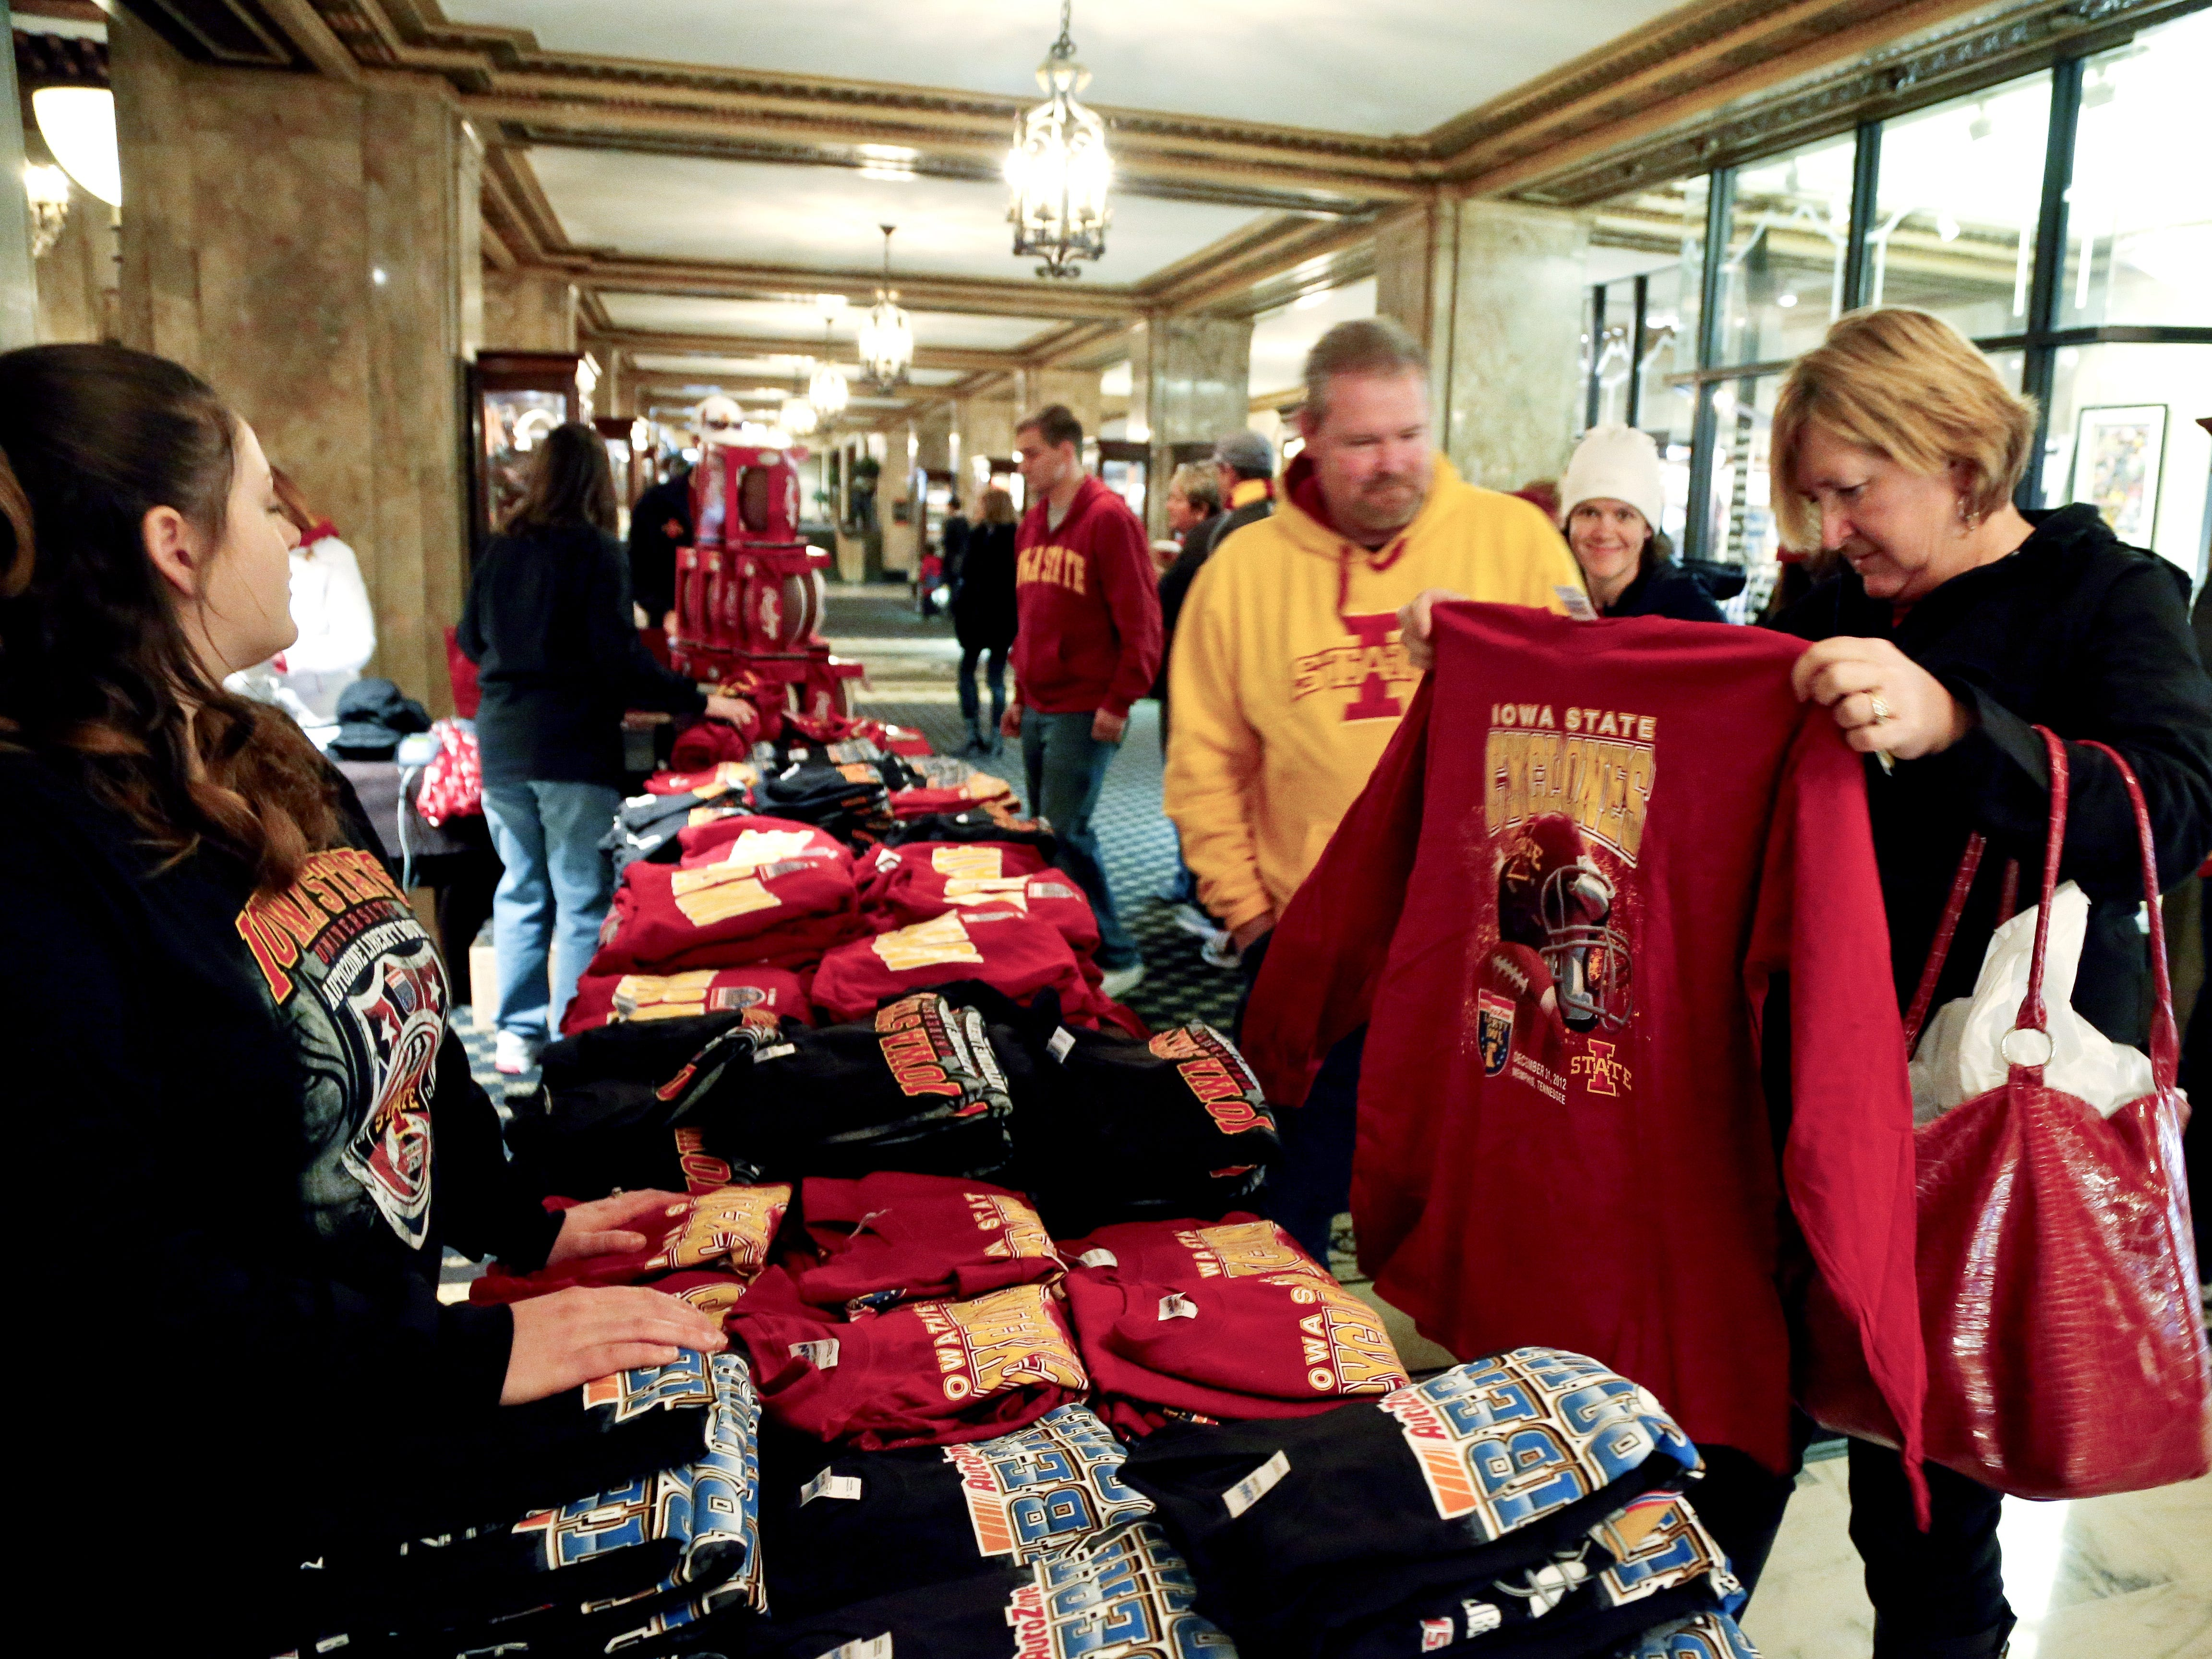 Iowa State Cyclones fans Bill and Jan Mishler of Tiffin, Iowa, check out Liberty Bowl T-shirts in the lobby of the Peabody Hotel in Memphis on Dec. 29, 2012.